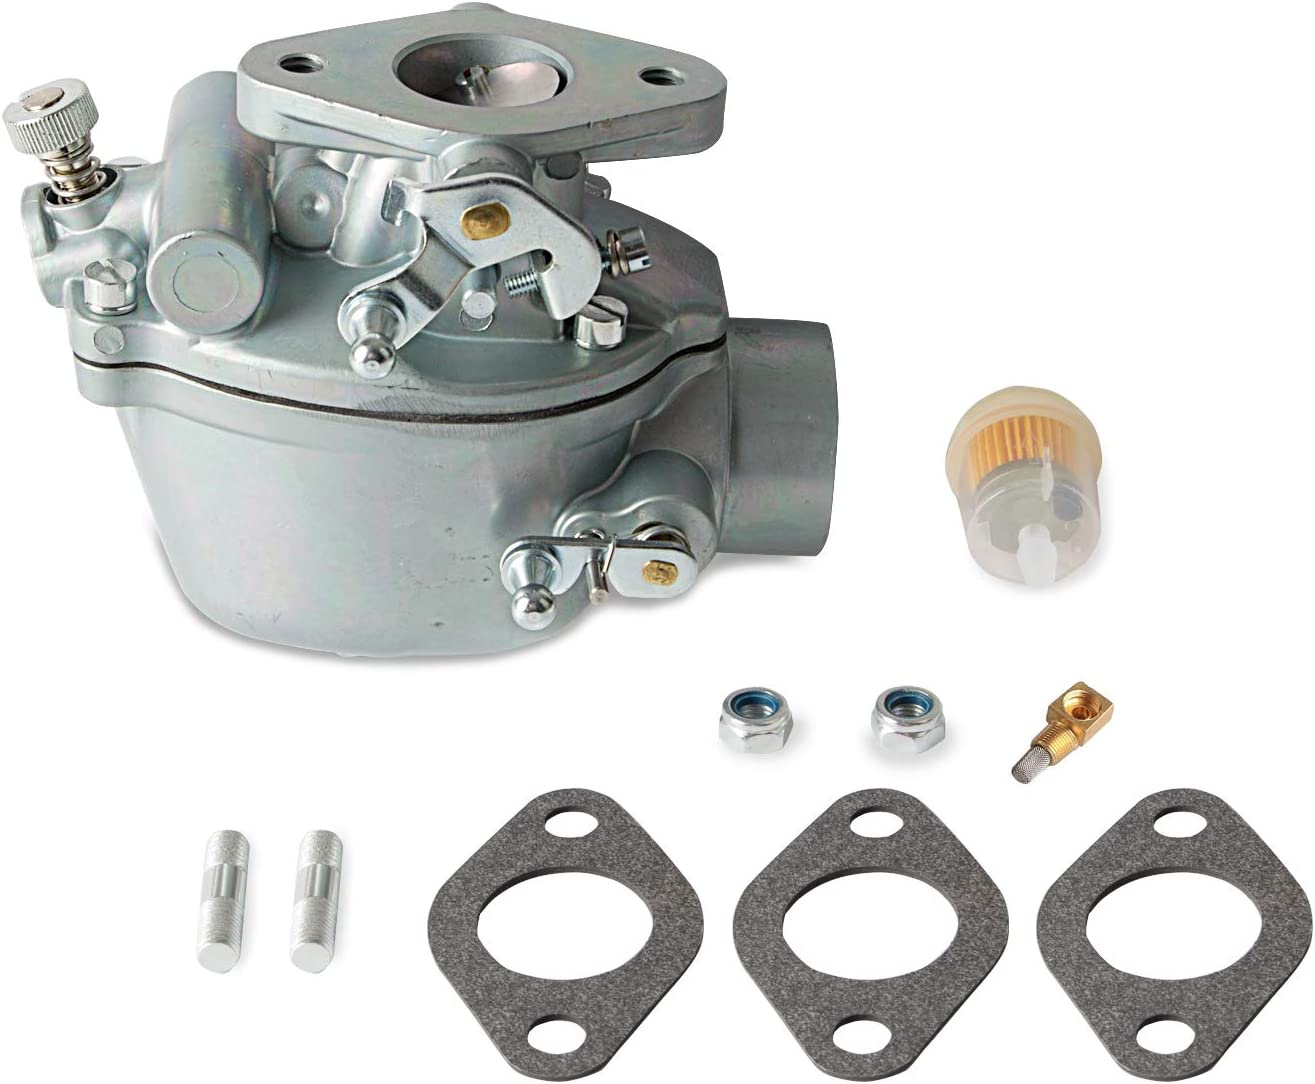 Carburetor Carb Compatible with Ford 2N 8N 9N Tractor, Replaces 8N9510C, 9N9510A, B3NN9510A, TSX241A, TSX241B, TSX241C, TSX33: Automotive